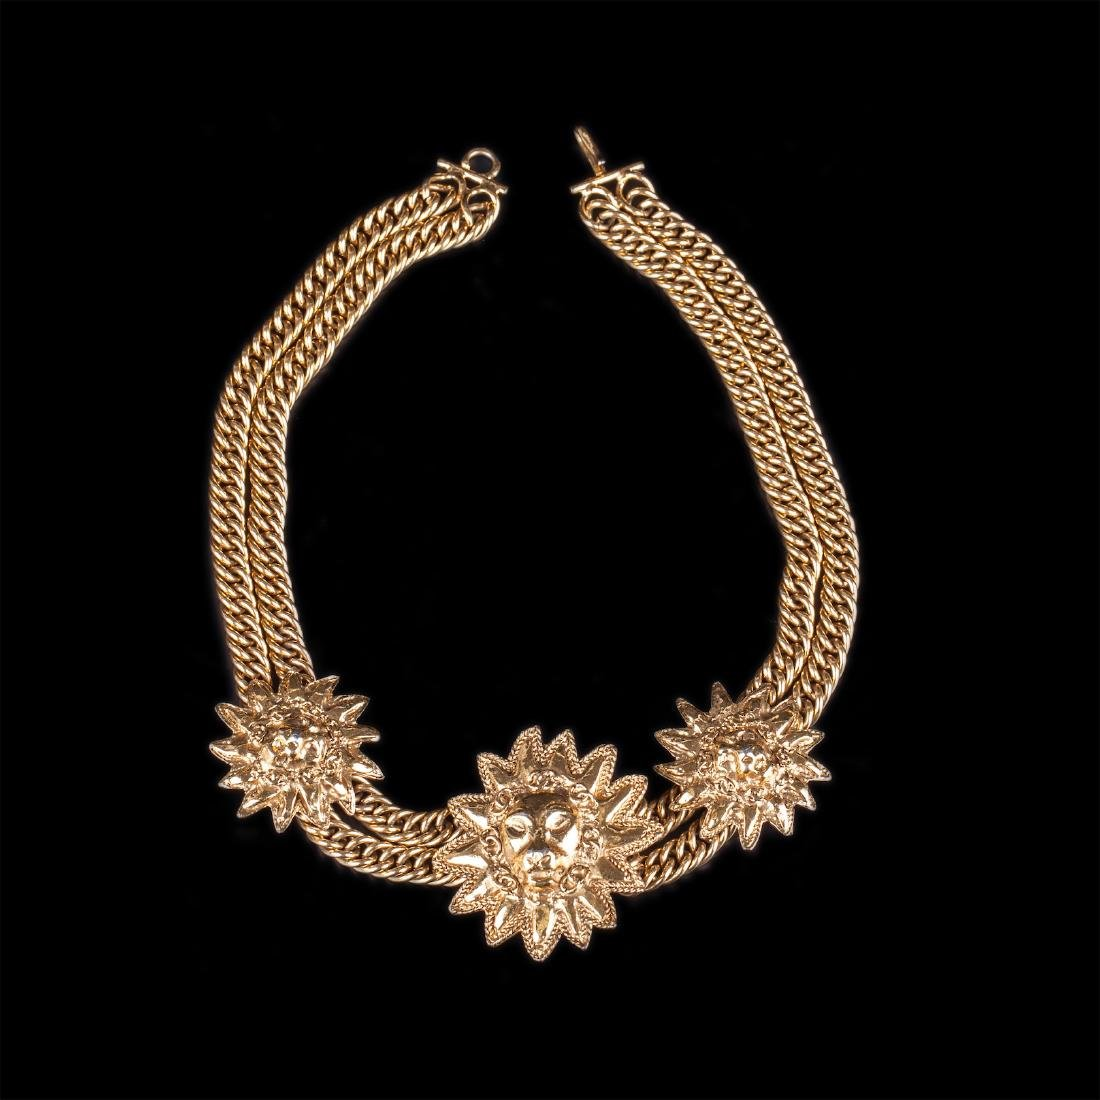 Chanel nacklace with lion faces from 70-80-s